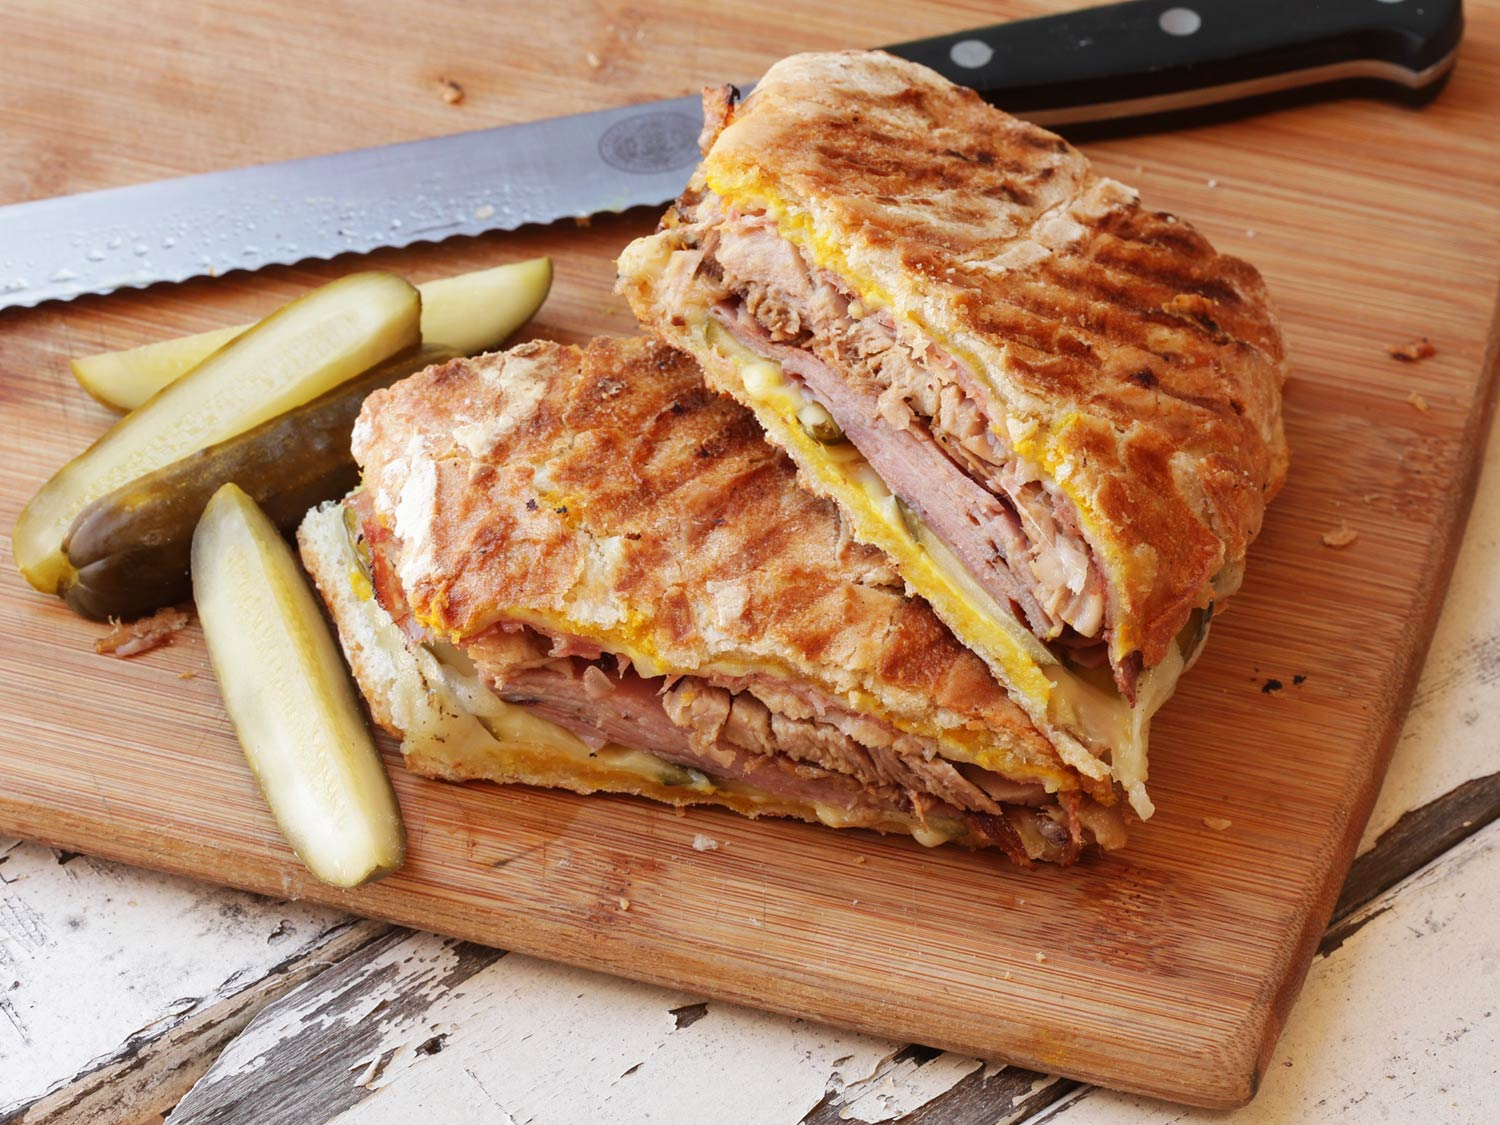 20160623-cubano-roast-pork-sandwich-recipe-19-thumb-1500xauto-432791.jpg